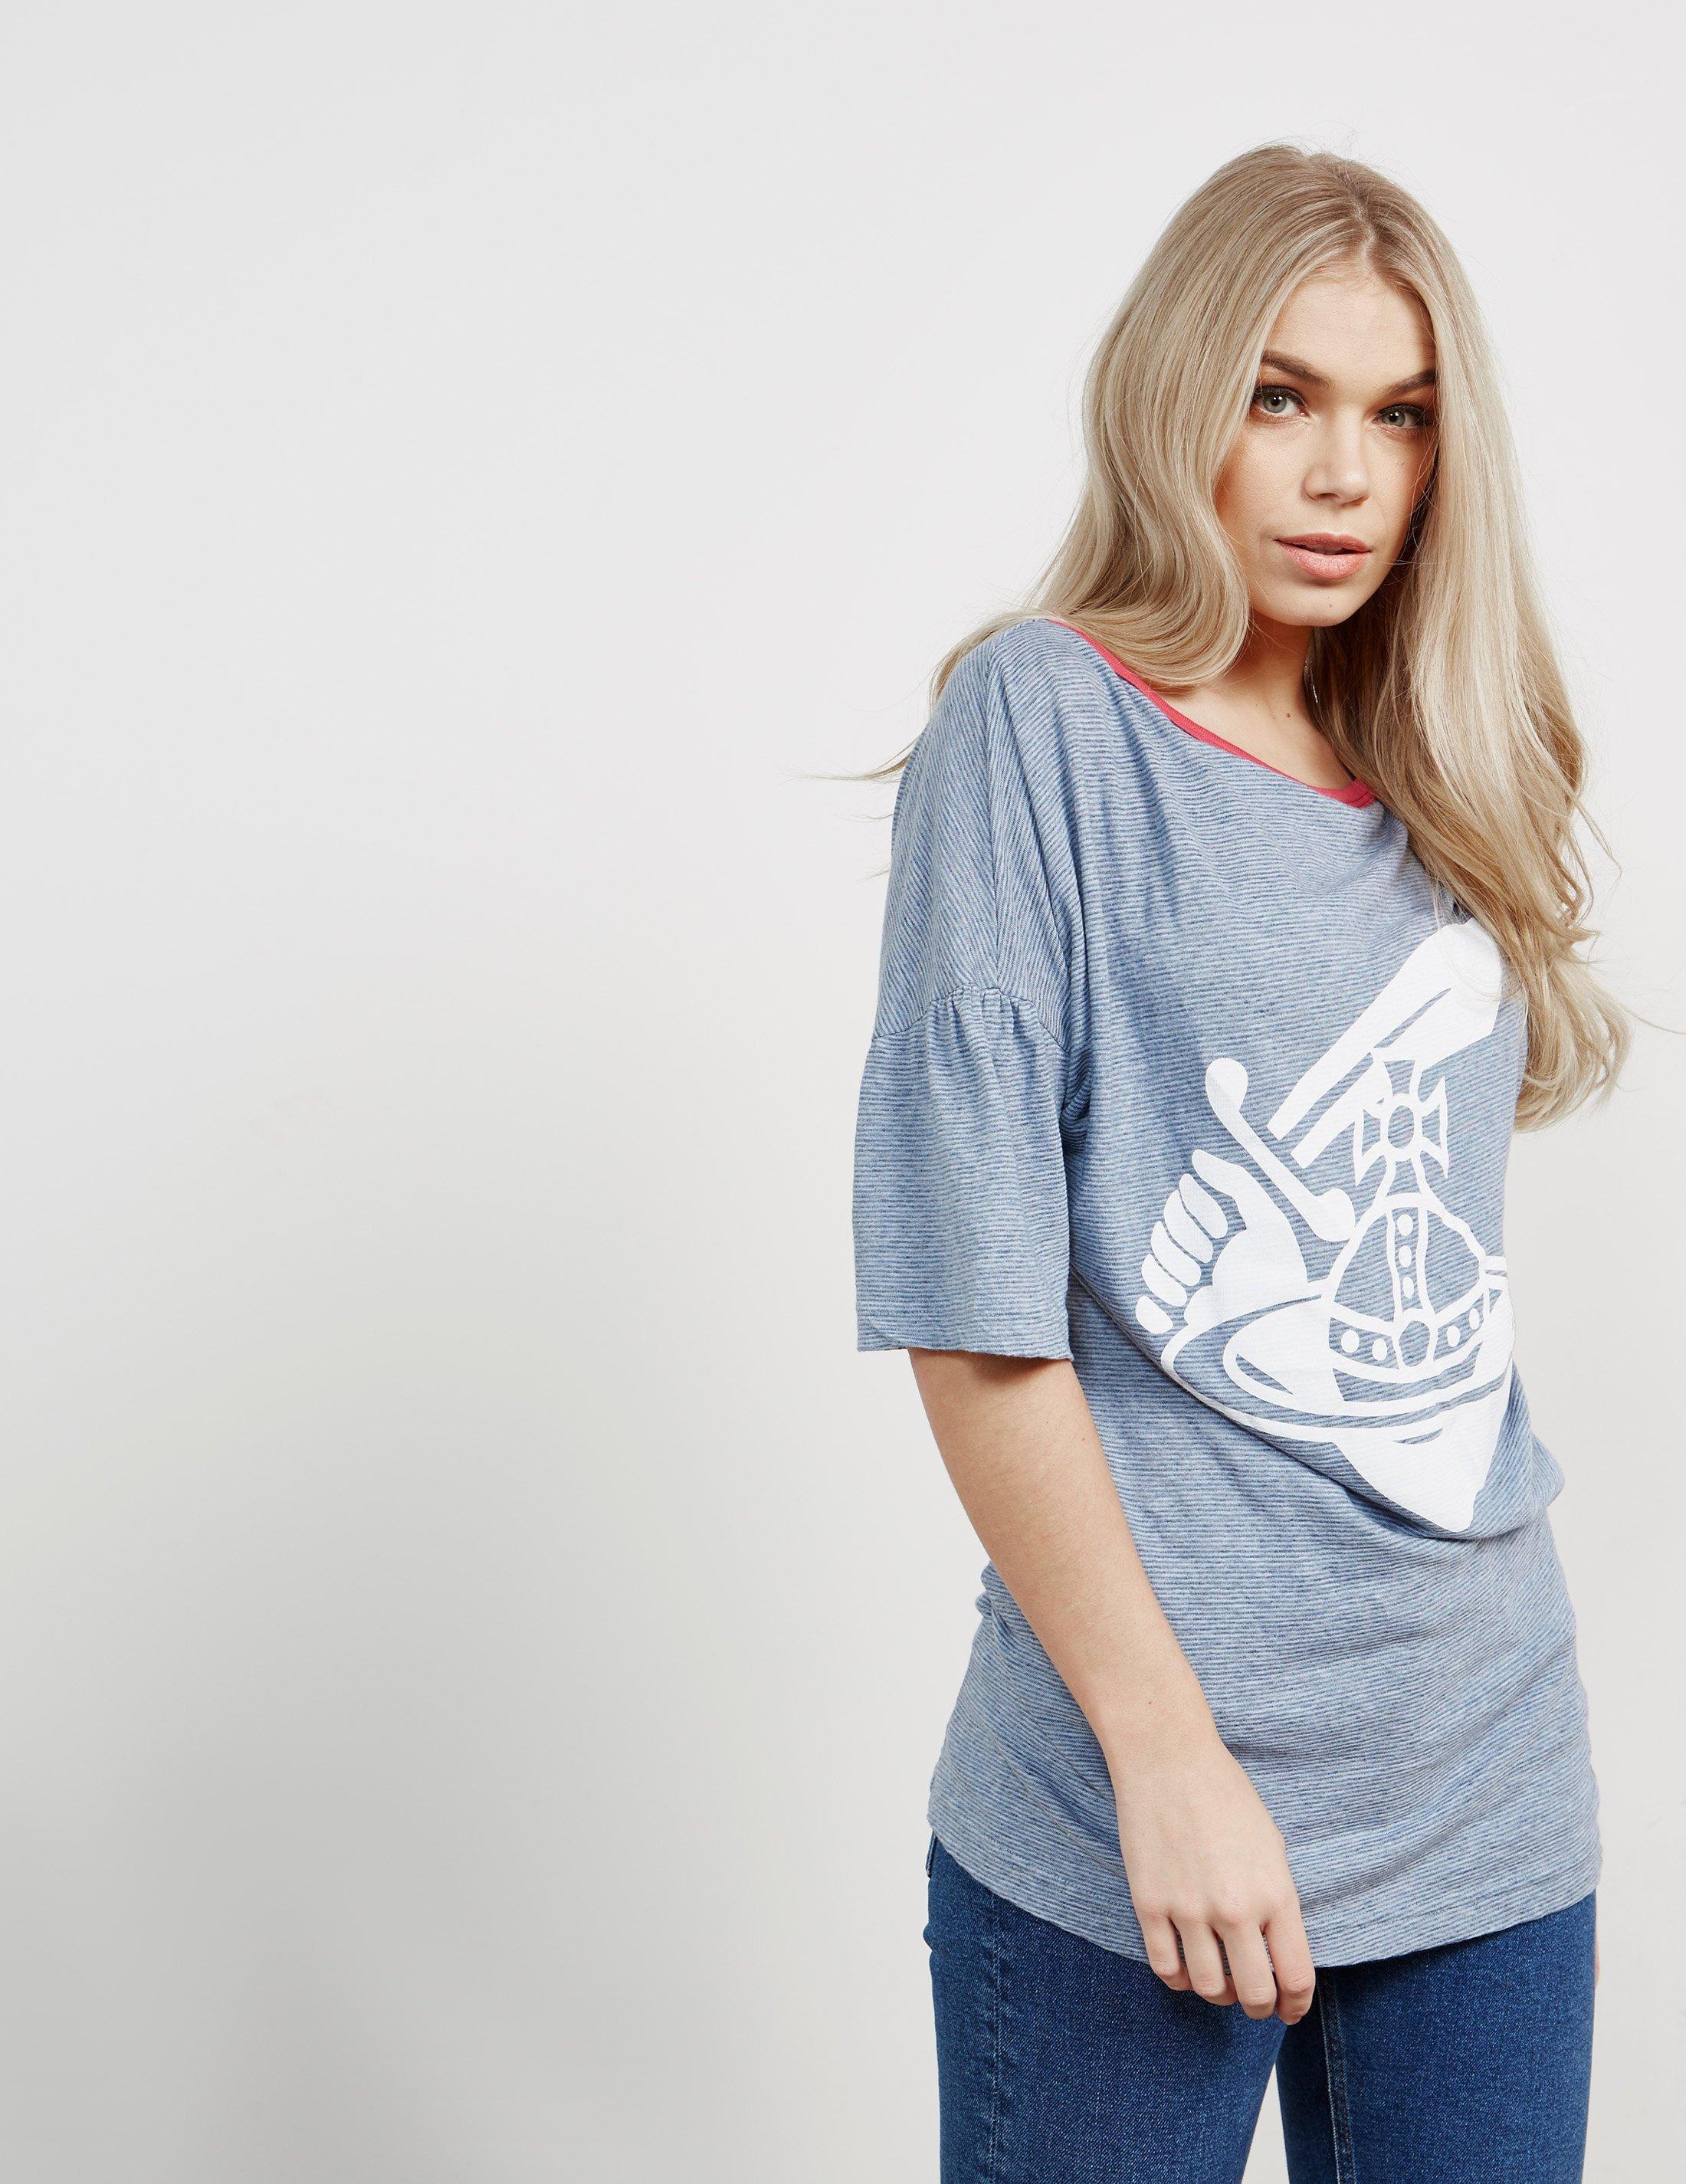 0e885fc09 Vivienne Westwood - Anglomania Midling Orb Short Sleeve T-shirt Blue -  Lyst. View fullscreen